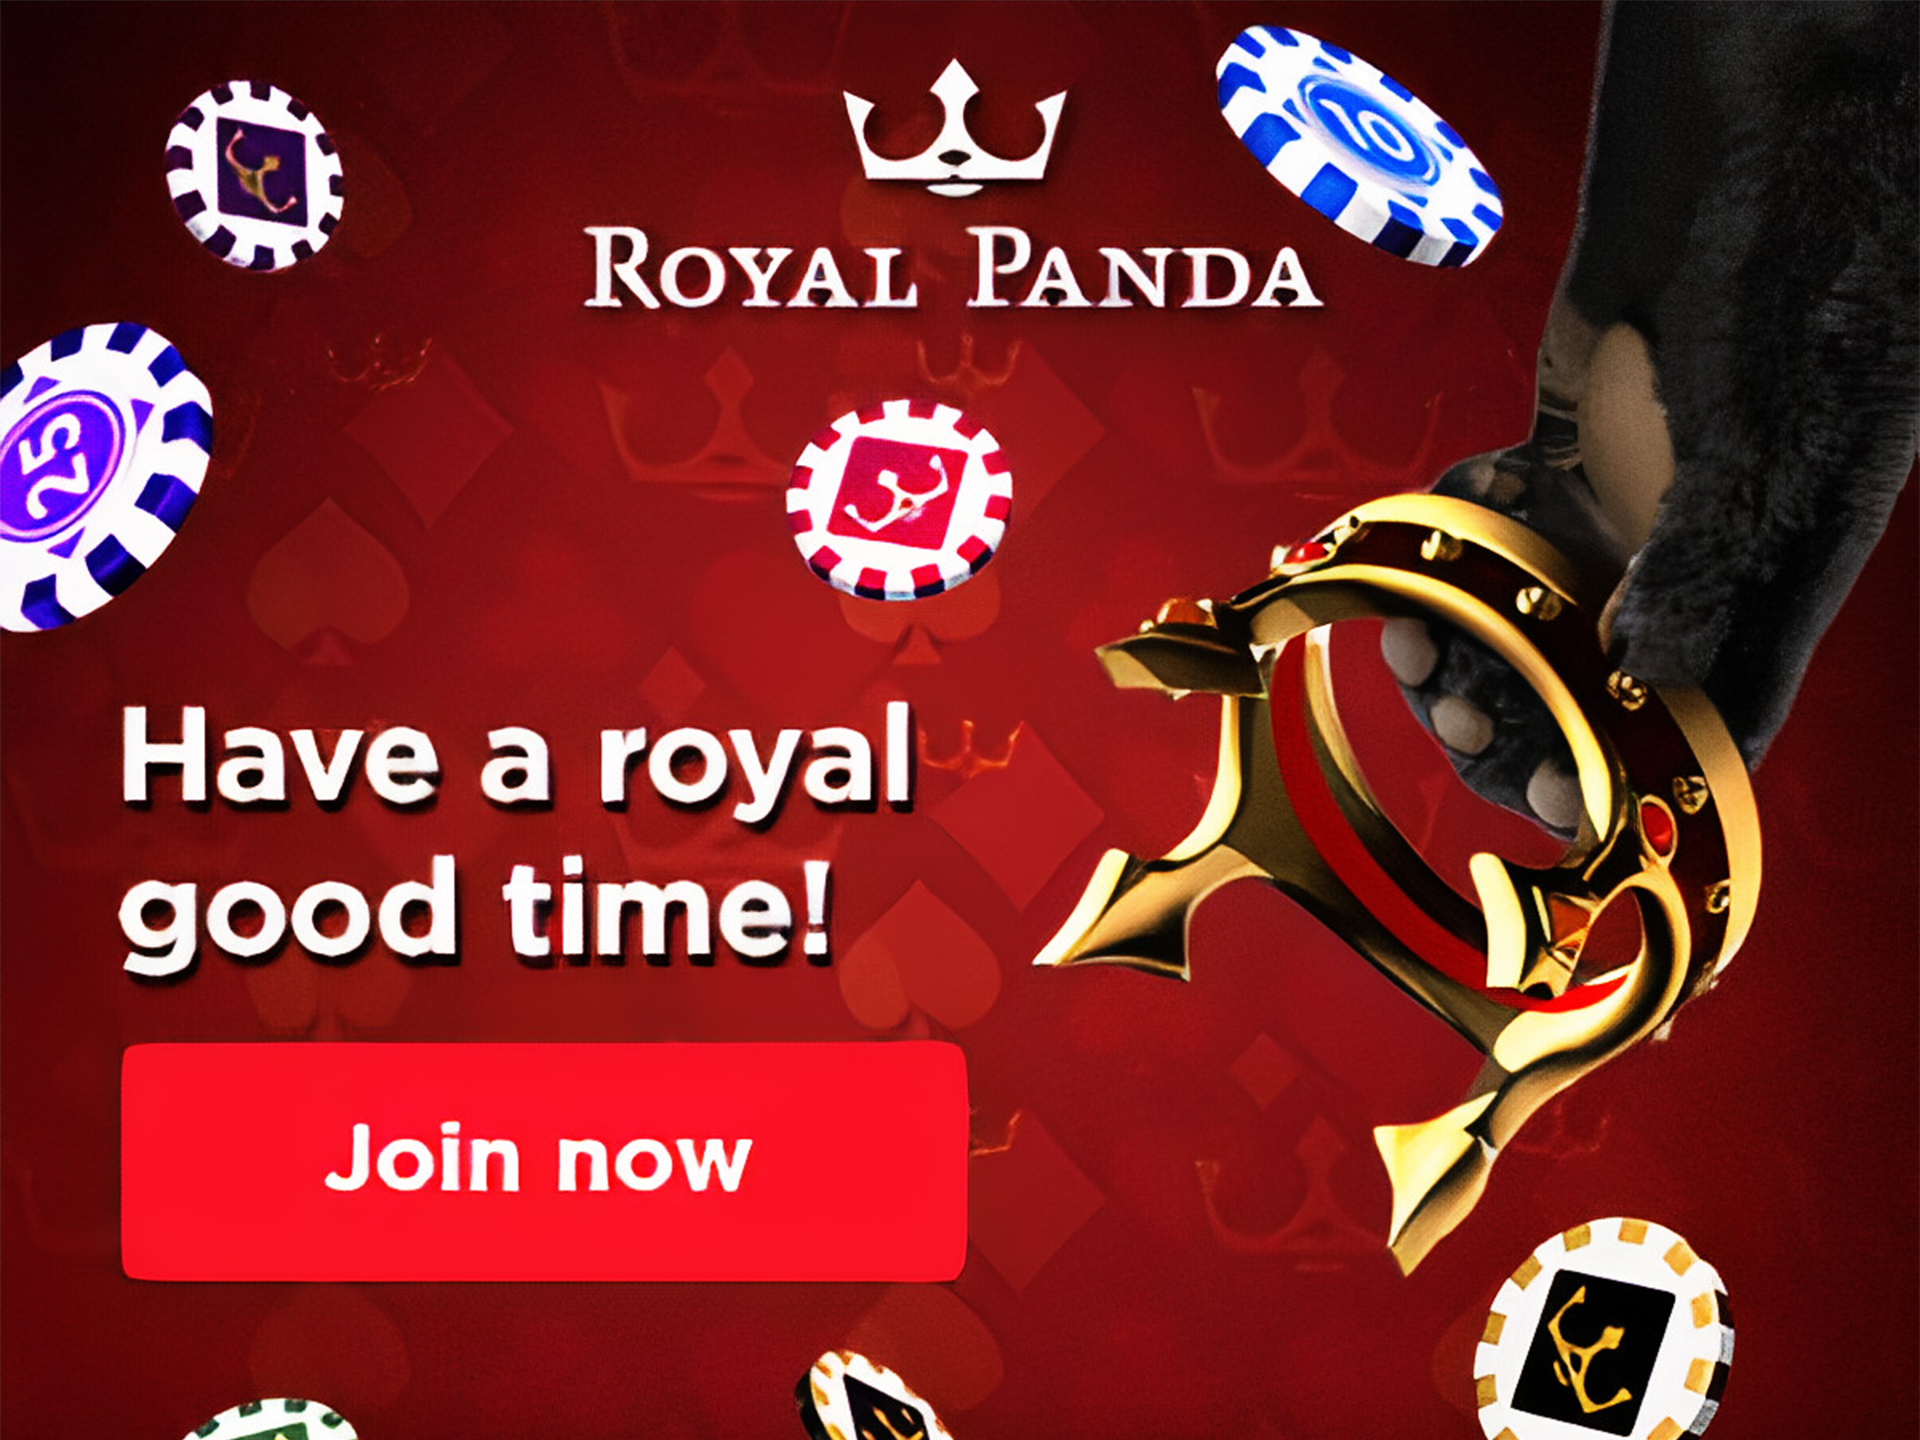 Cricket betting enthusiasts will be satisfied with Royal Panda.